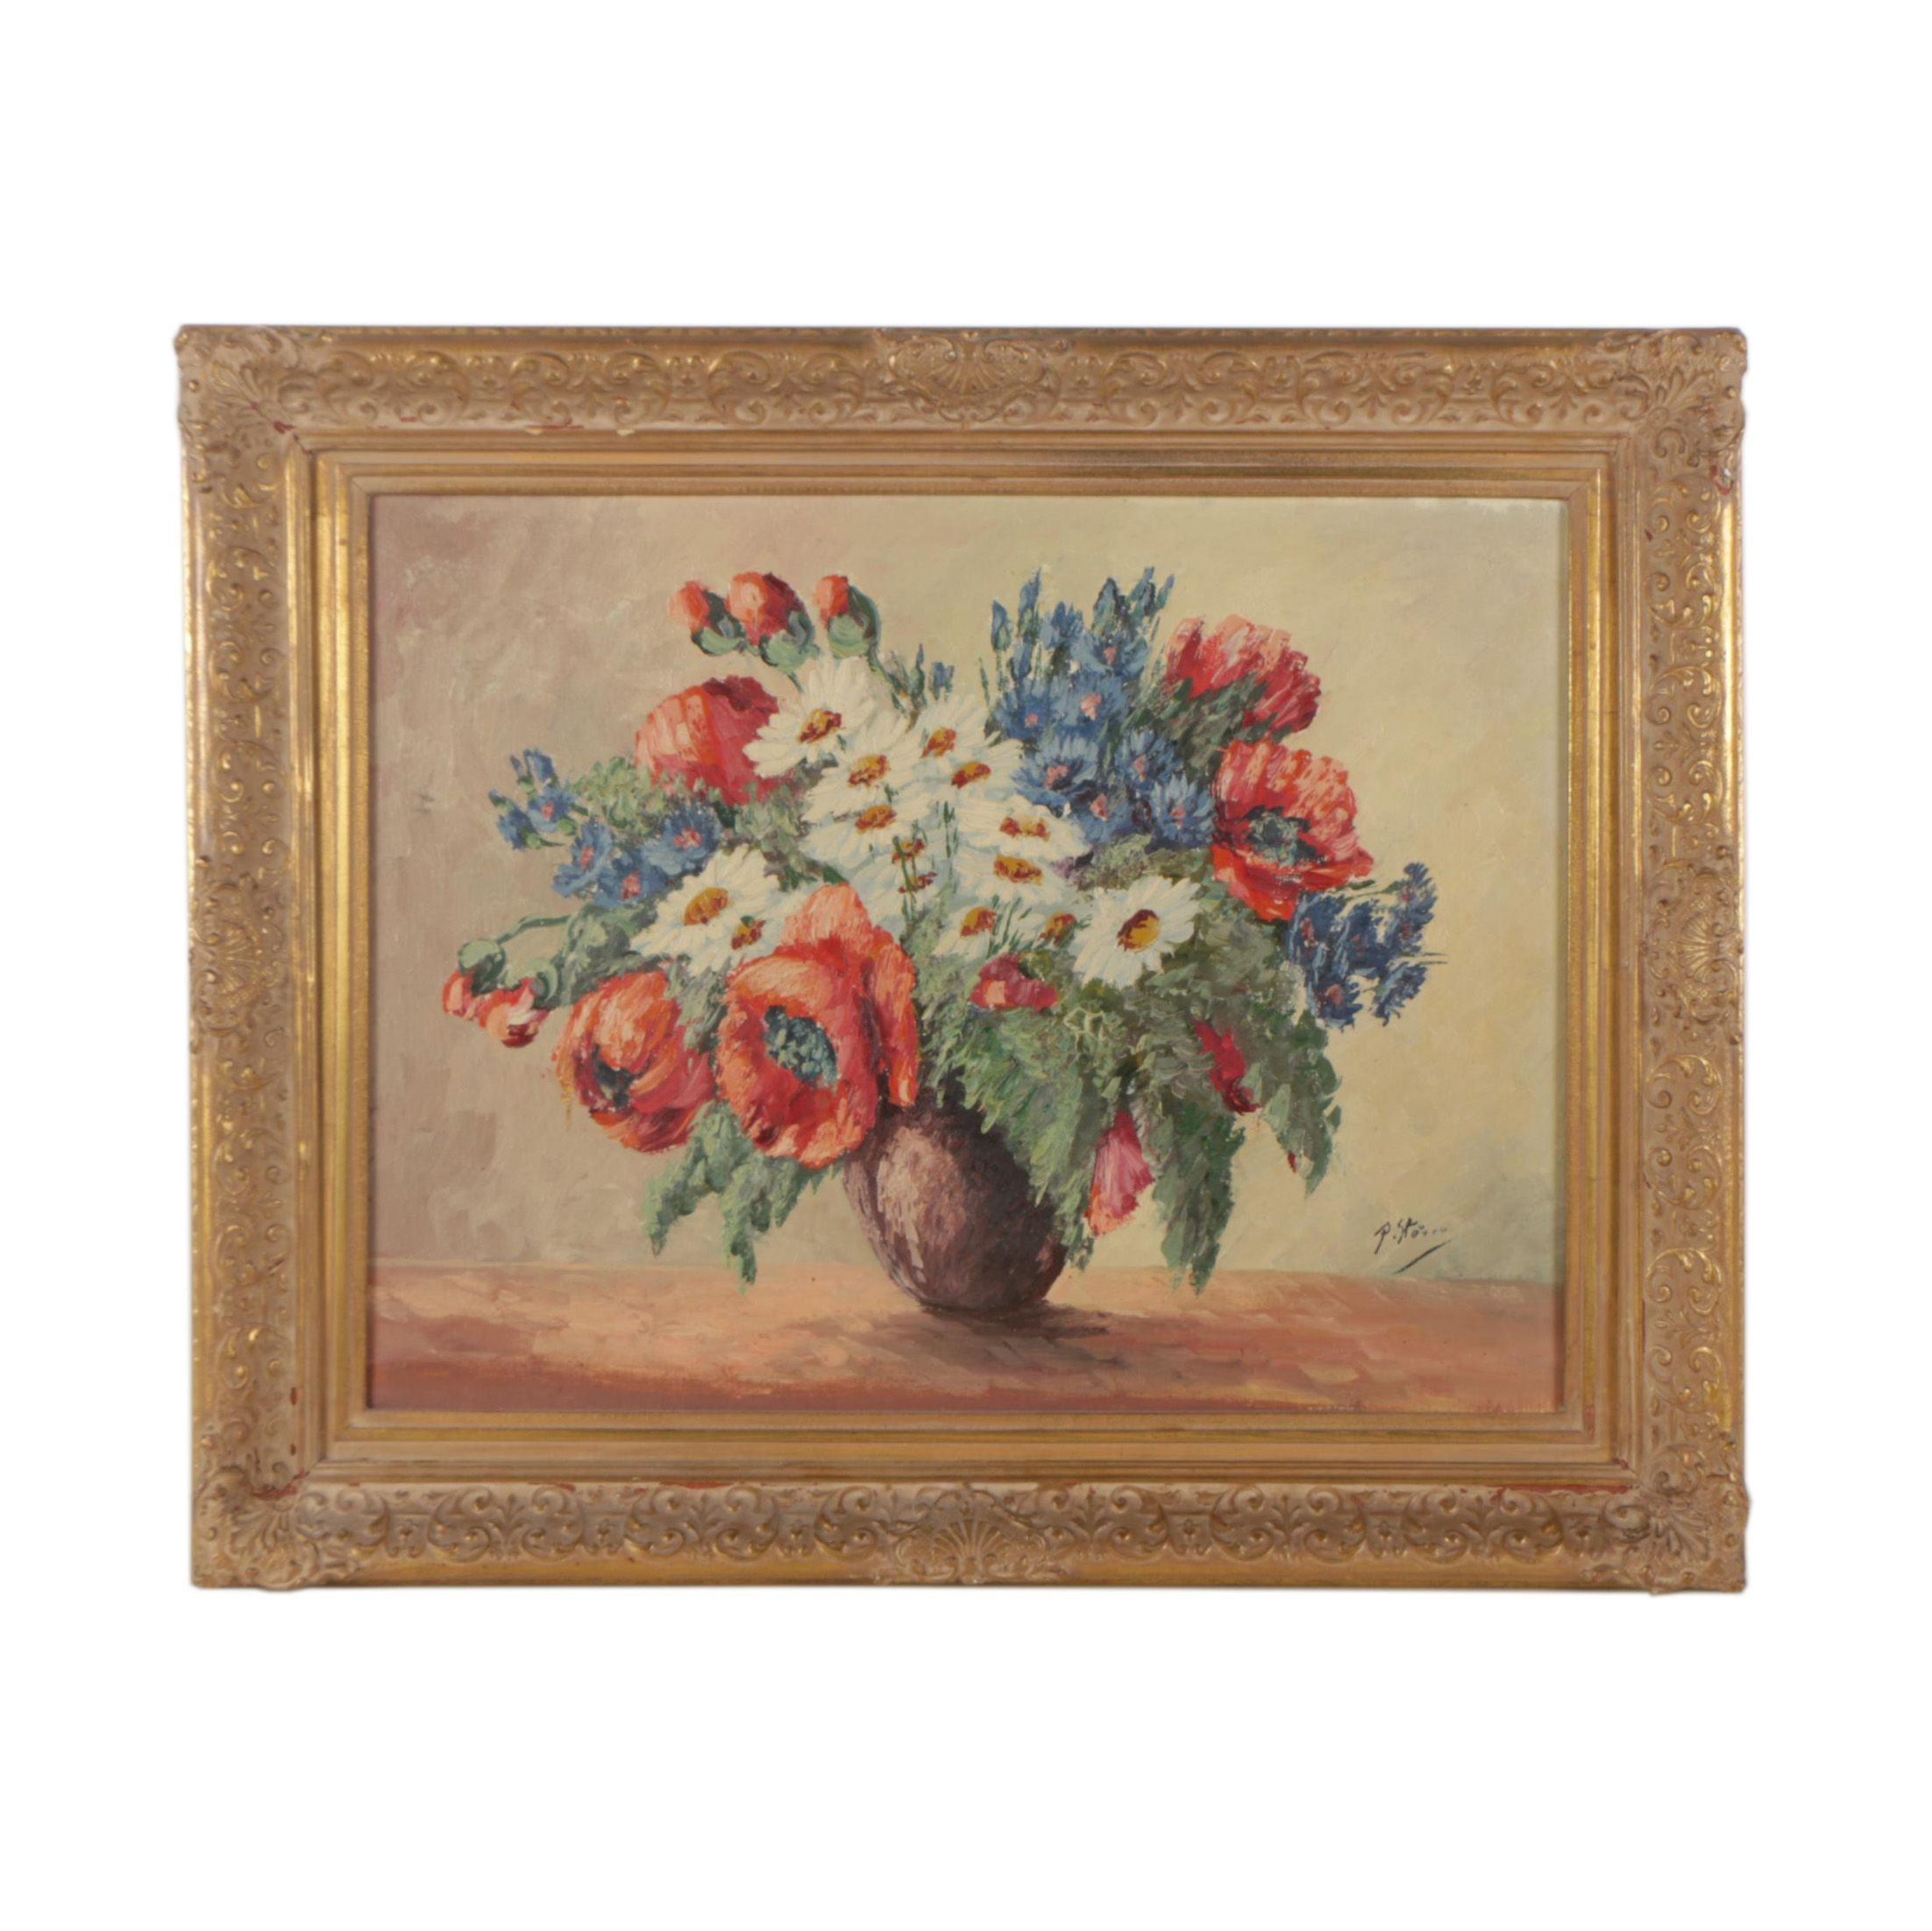 P. S. Oil Painting of Flowers